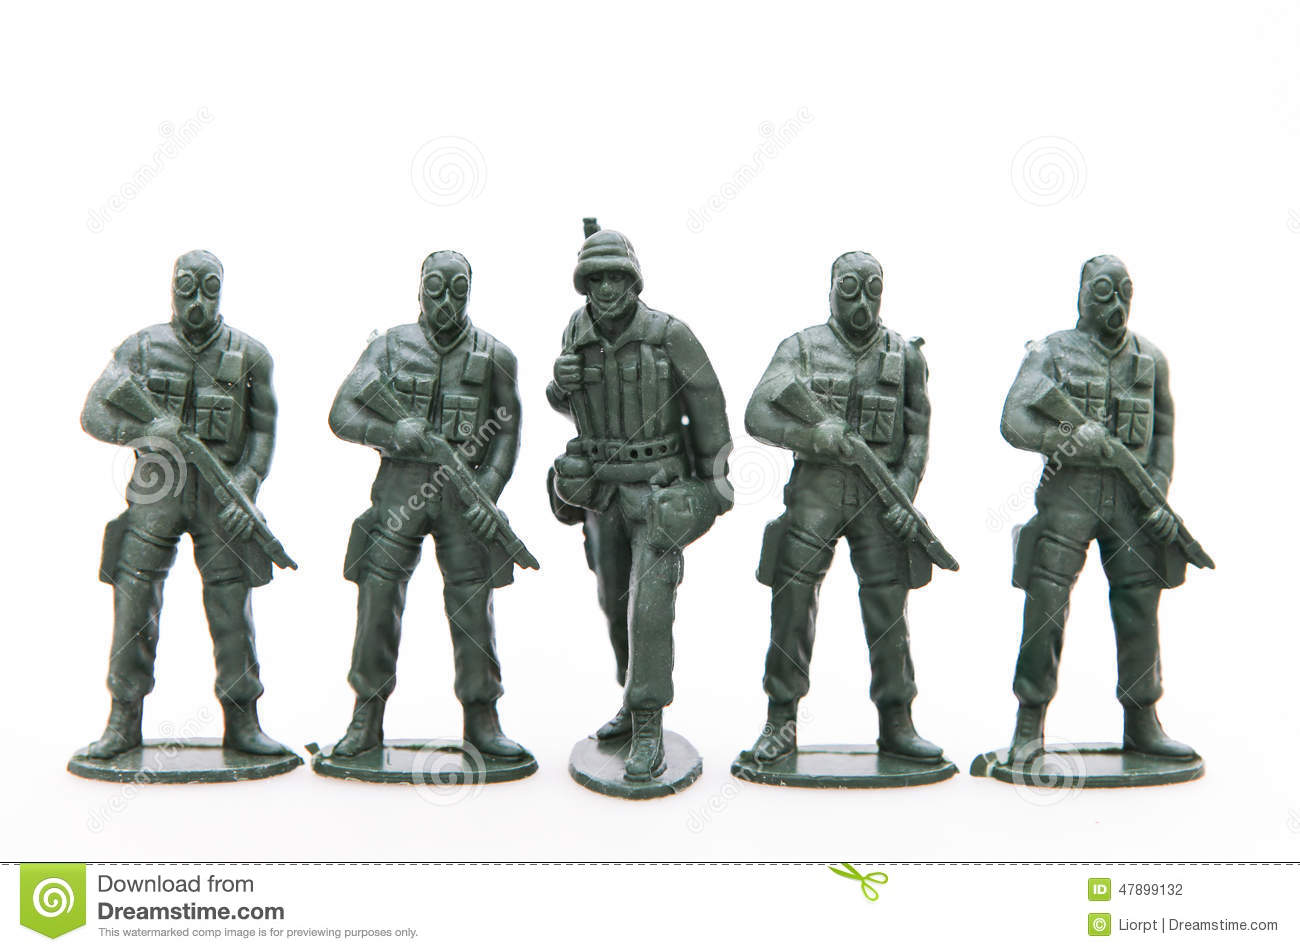 Toy soldiers stock photo  Image of strategic, army, miniature - 47899132